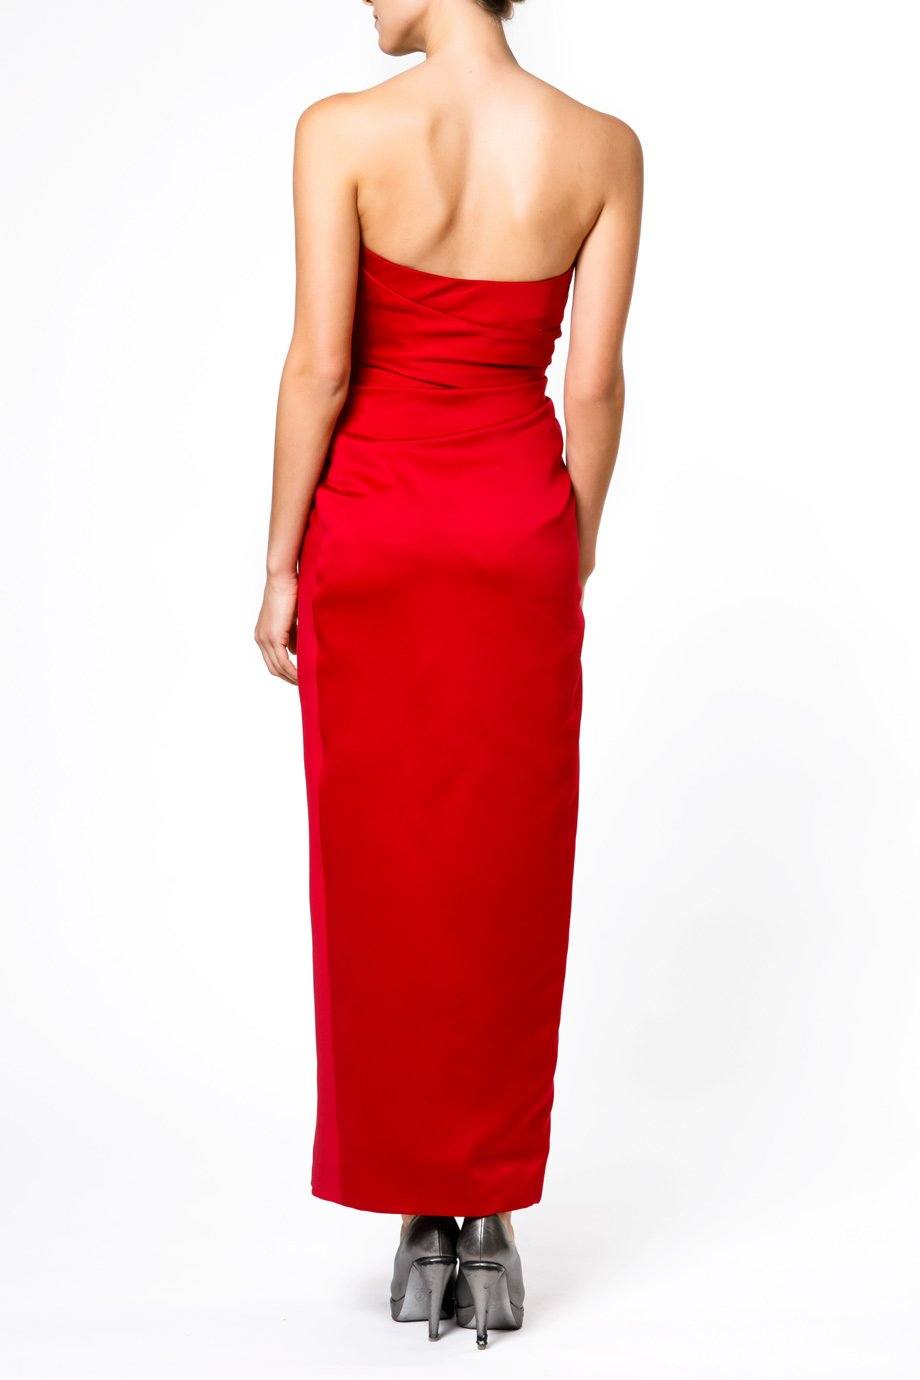 Victor Costa Satin Red Strapless  Aplique Gown 302